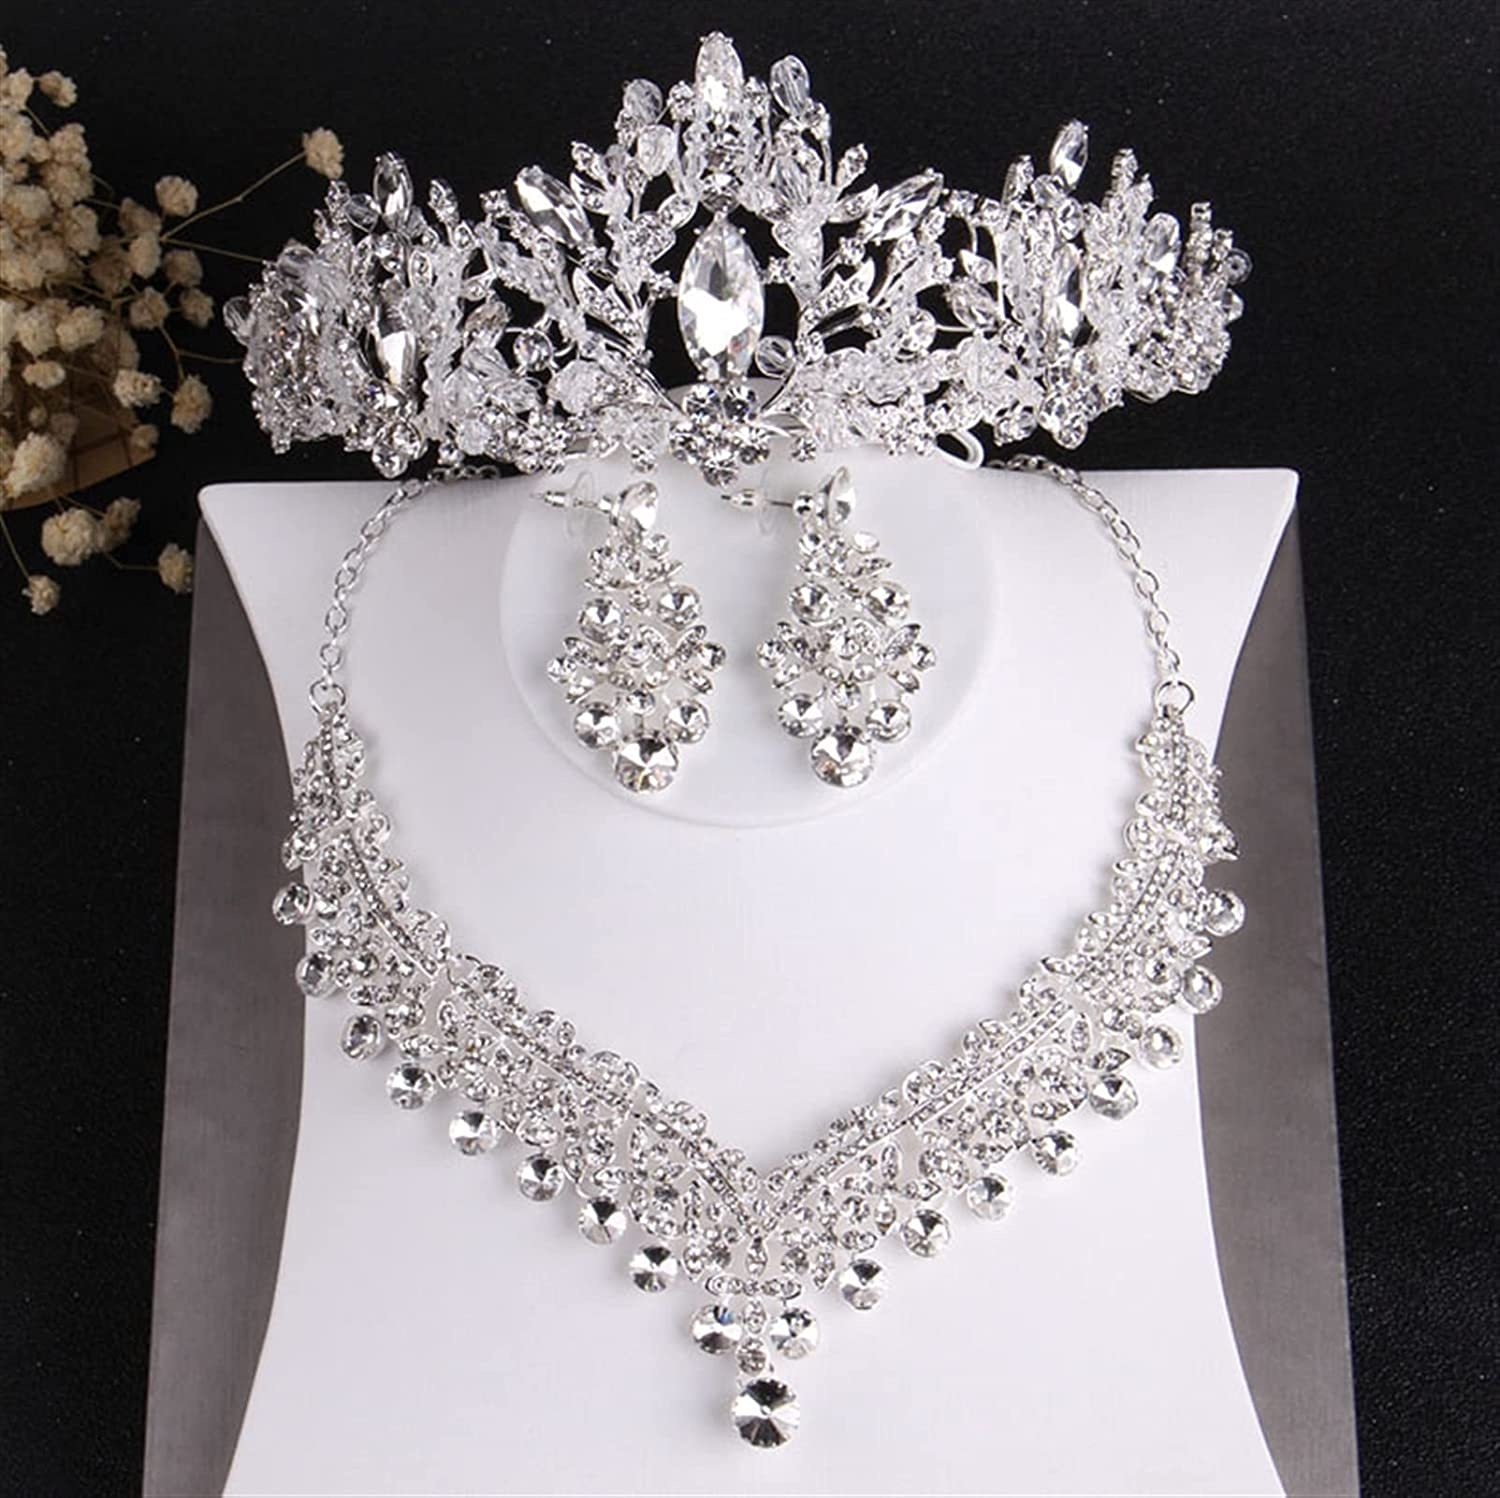 YUANBOO Baroque Luxury Crystal Beads Bridal Jewelry Sets Rhinestone Tiaras Crown Necklace Earrings Wedding African Beads Jewelry Set (Metal Color : 3Pcs Jewelry Set)